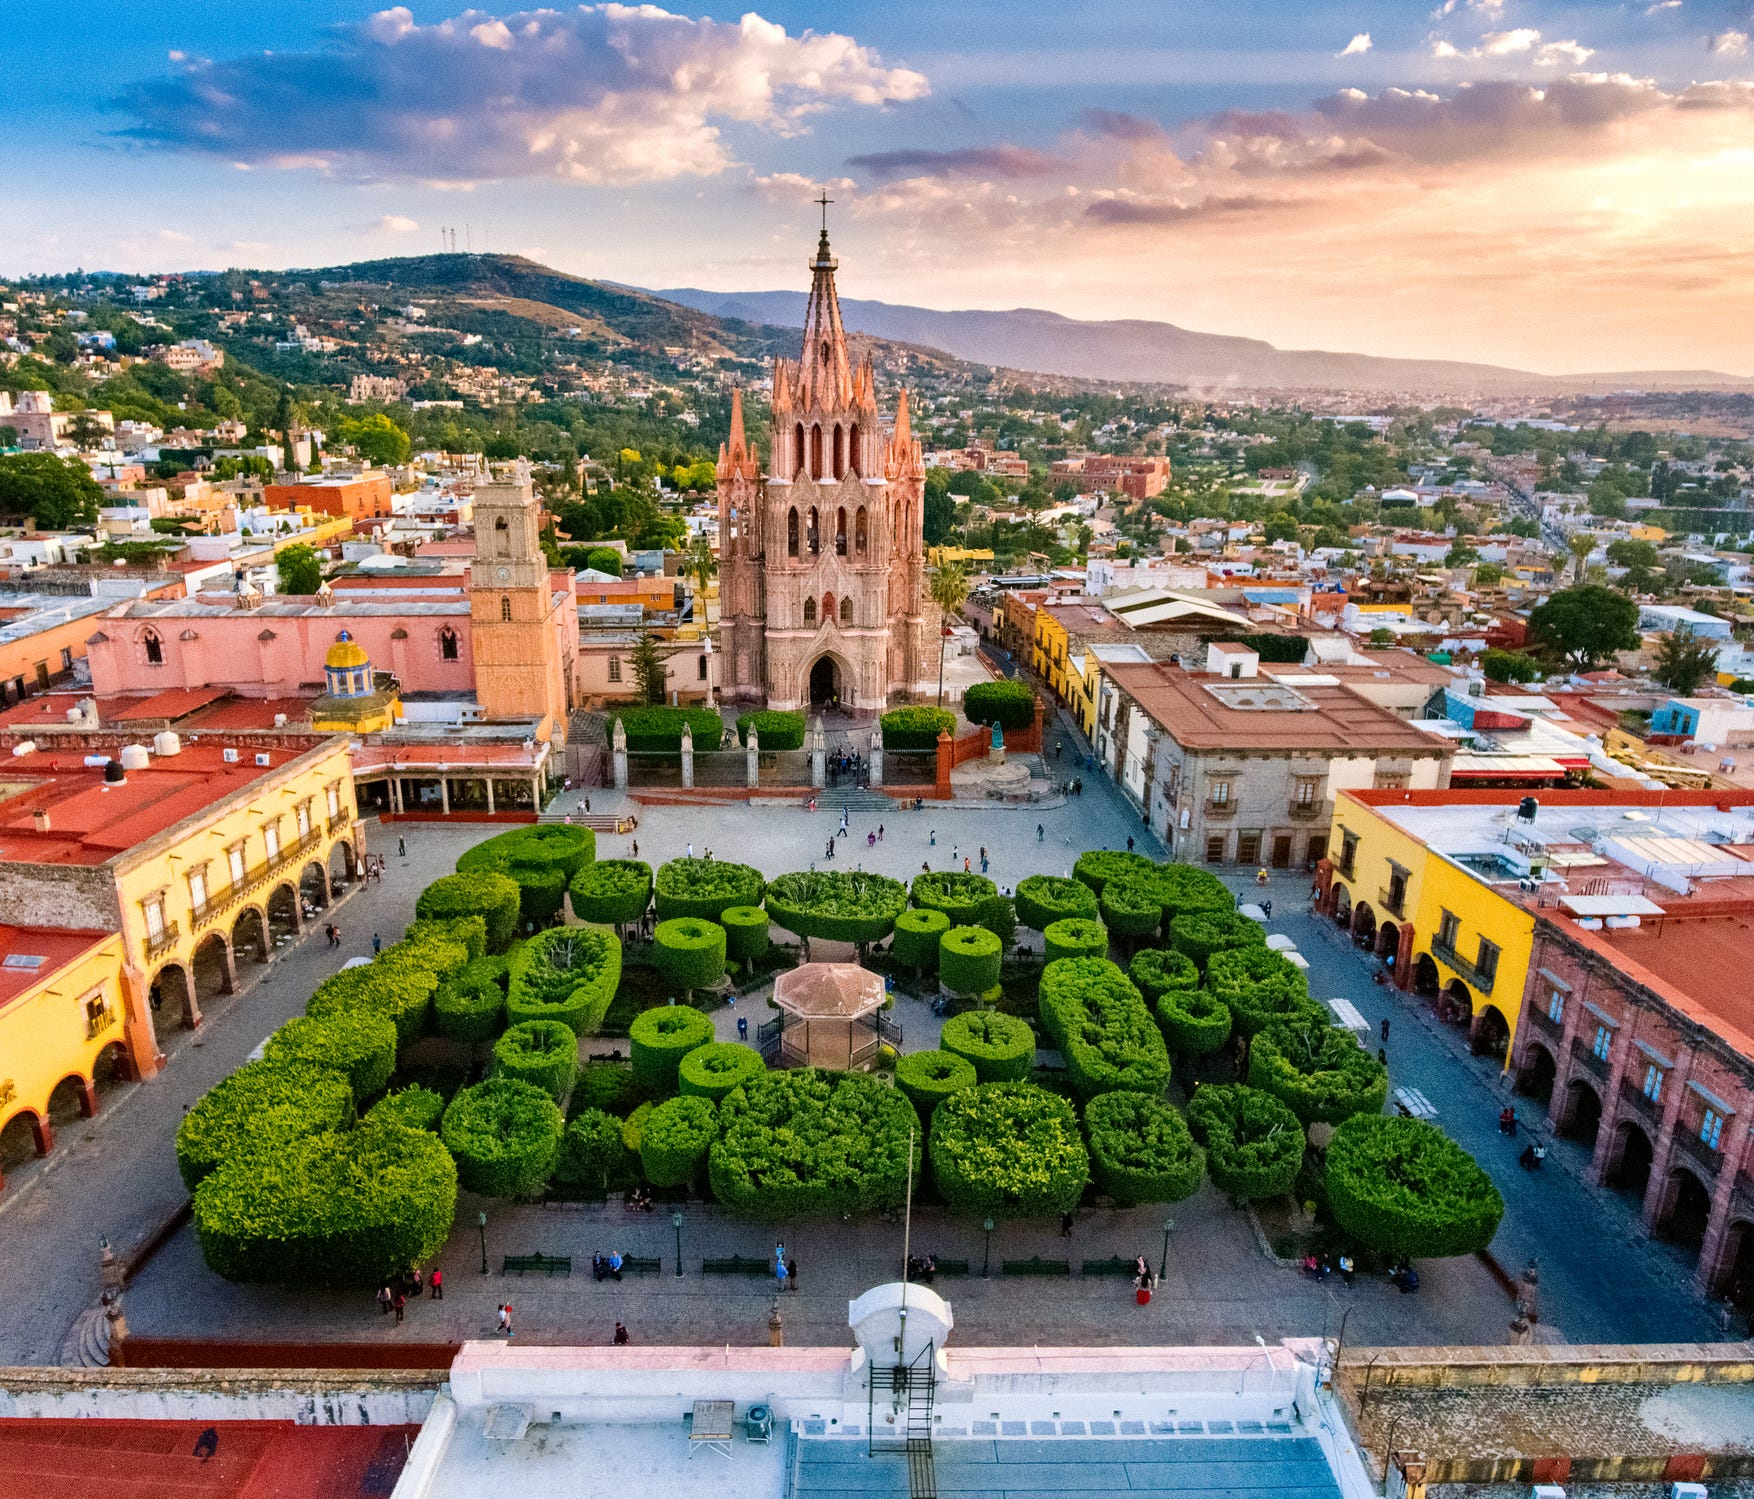 San Miguel de Allende: San Miguel de Allende is one of the safest places in Mexico, as evidenced by its popularity with expats. This UNESCO World Heritage Site is situated almost right in the middle of Mexico and offers cobblestone streets, Spanish c